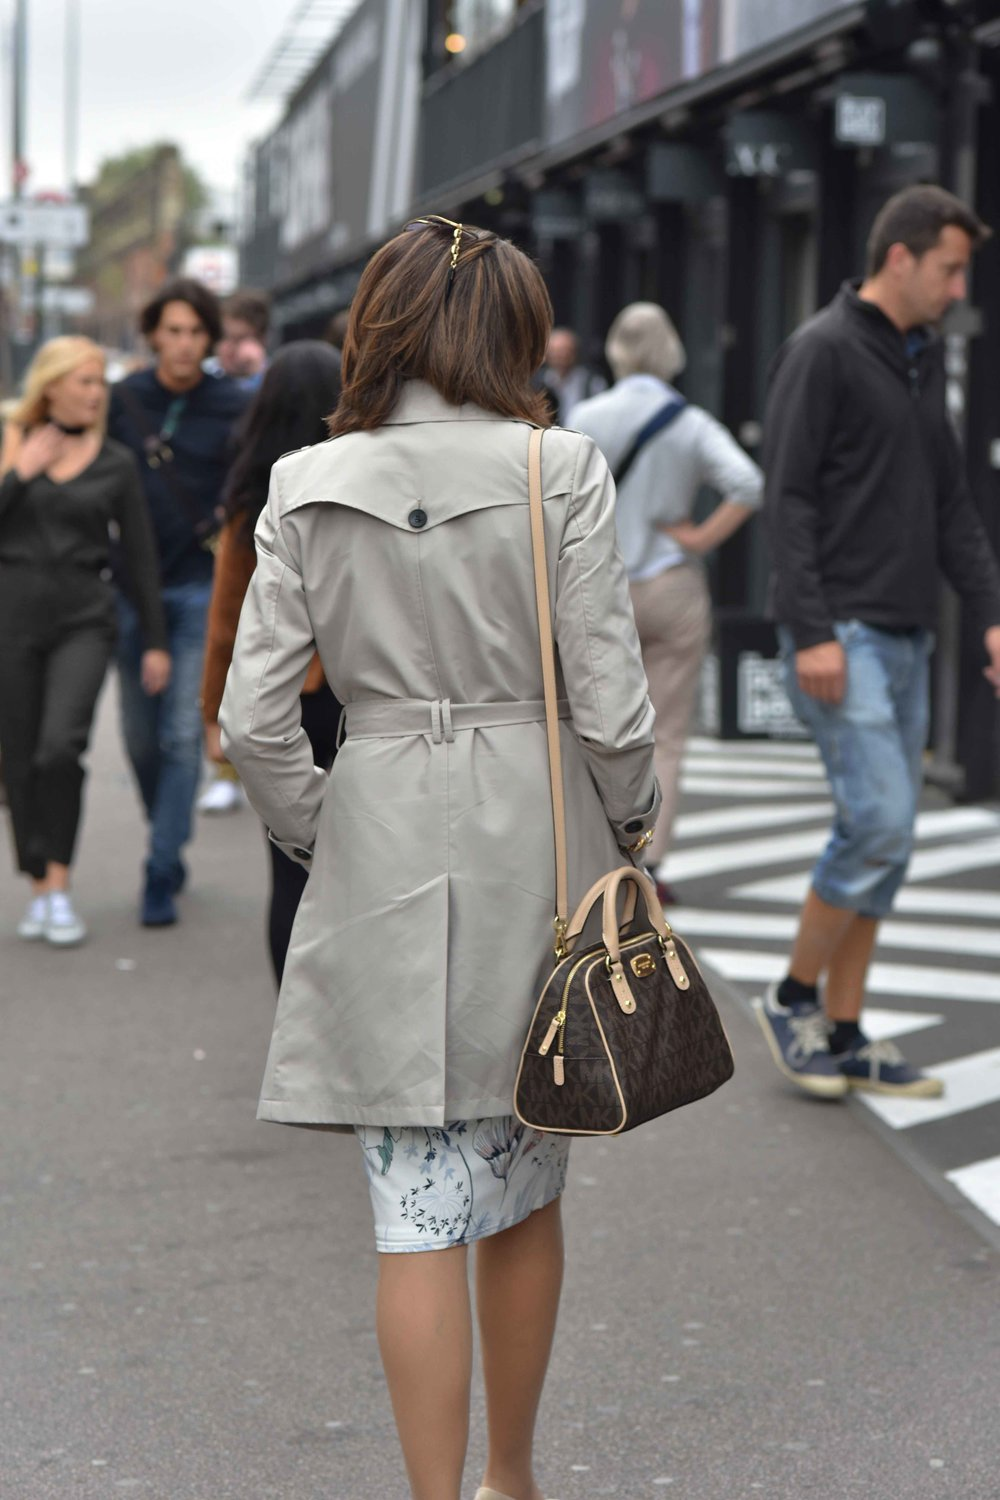 Michael Kors crossbody brown leather bag, clicked at Shoreditch, London, U.K. Image©sourcingstyle.com